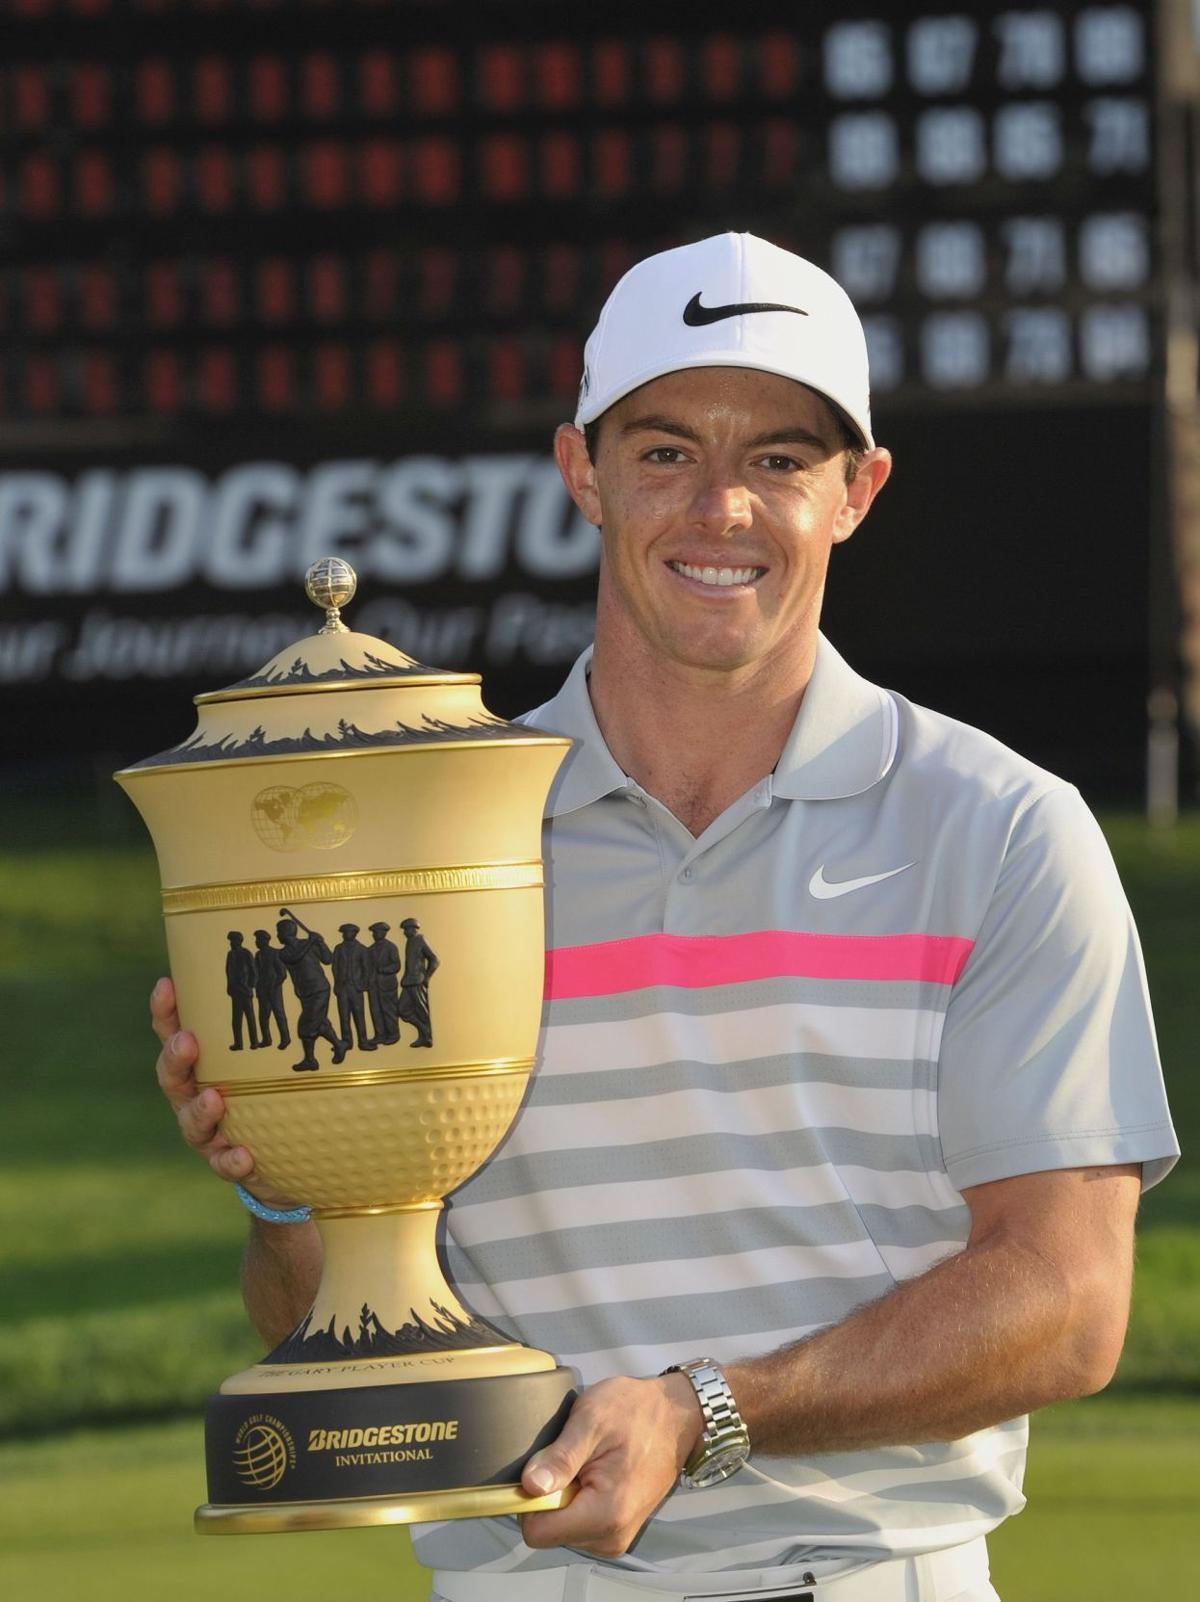 McIlroy wins, goes back to No. 1